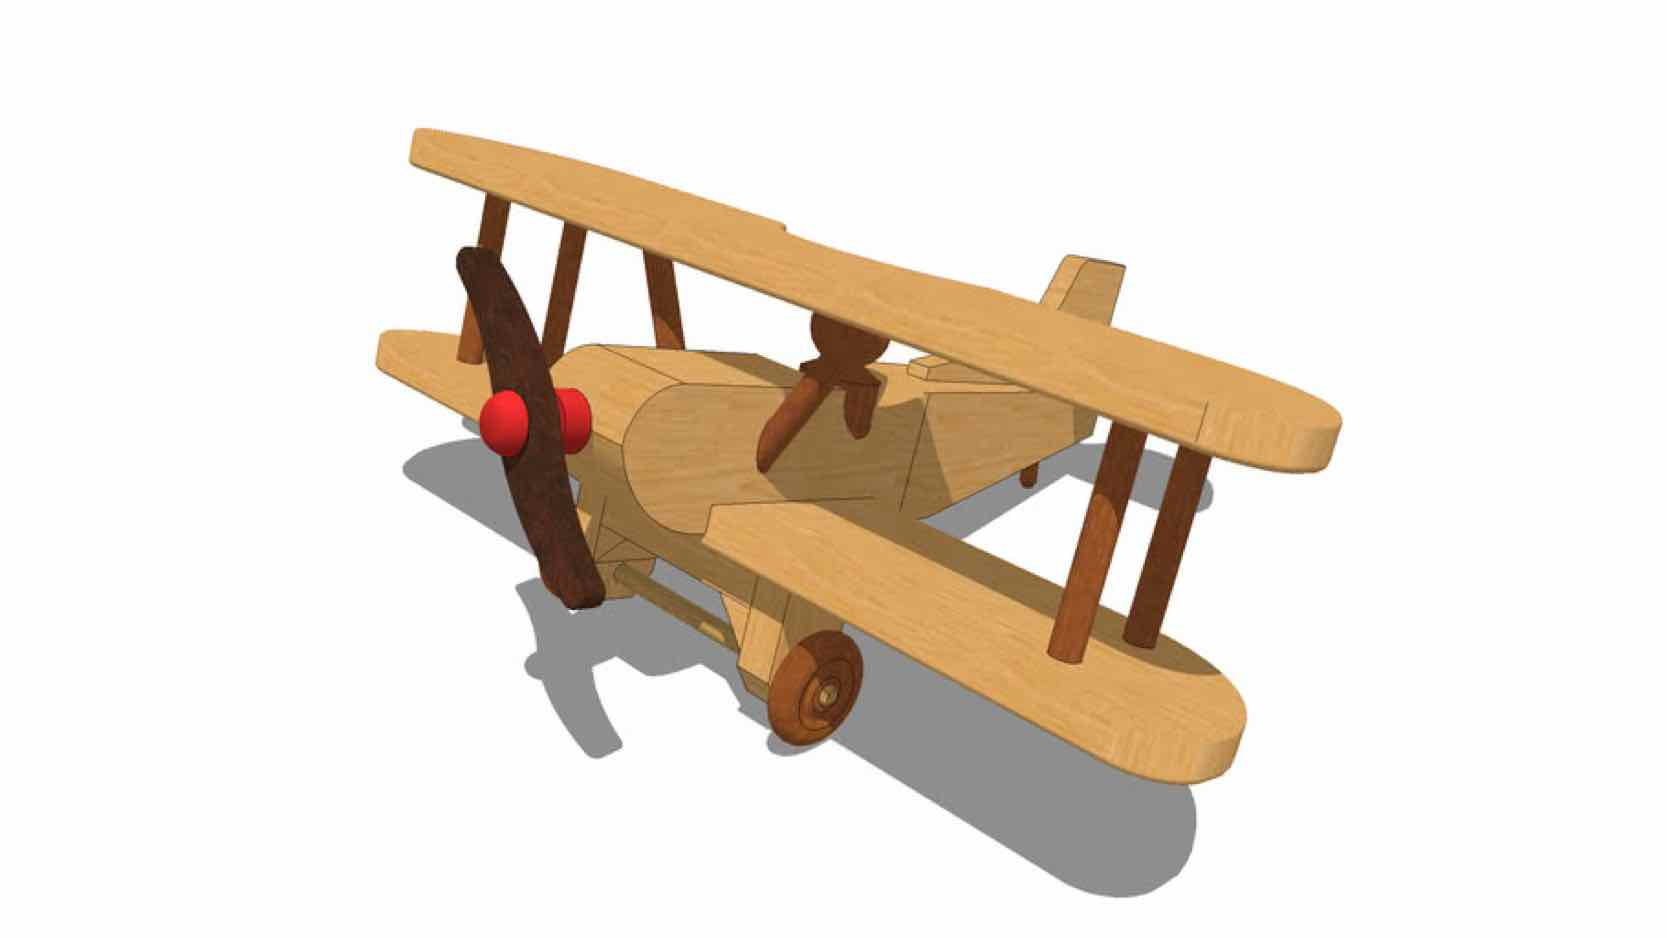 biplane,airplane,diy,free woodworking plans,free projects,do it yourself,toys,wooden toys